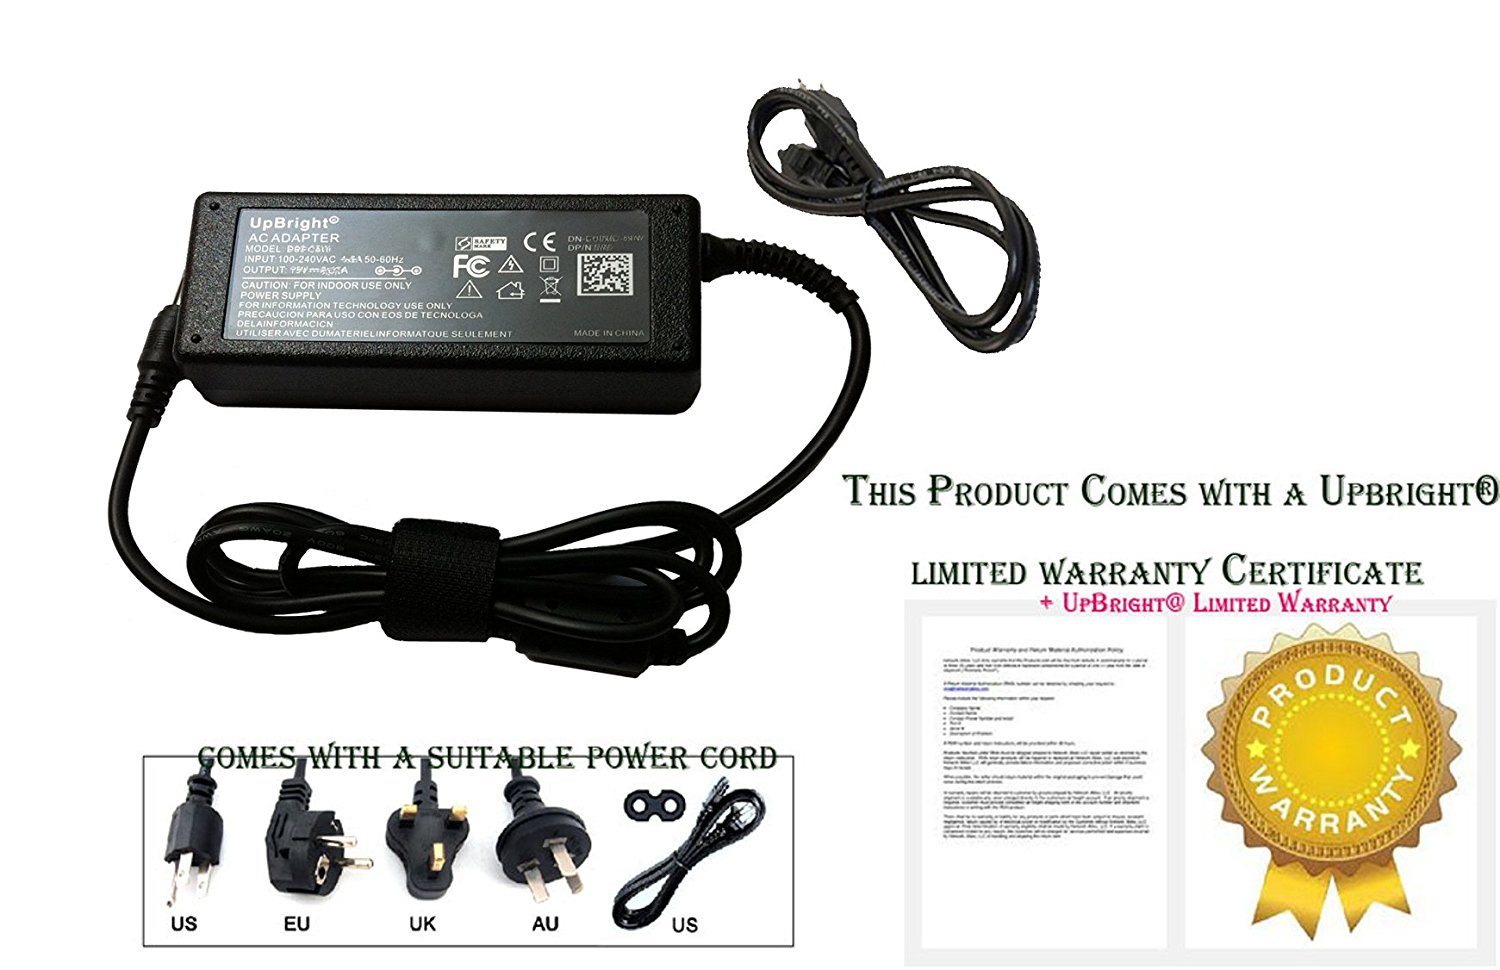 PK Power AC//DC Adapter Compatible with Elementech FSP120-ACB Landscape-792B Elemen Tech FSP120ACB Land Scape 792B 9NA1200516 Elliptical Machine Power Supply Cord Cable Charger PSU